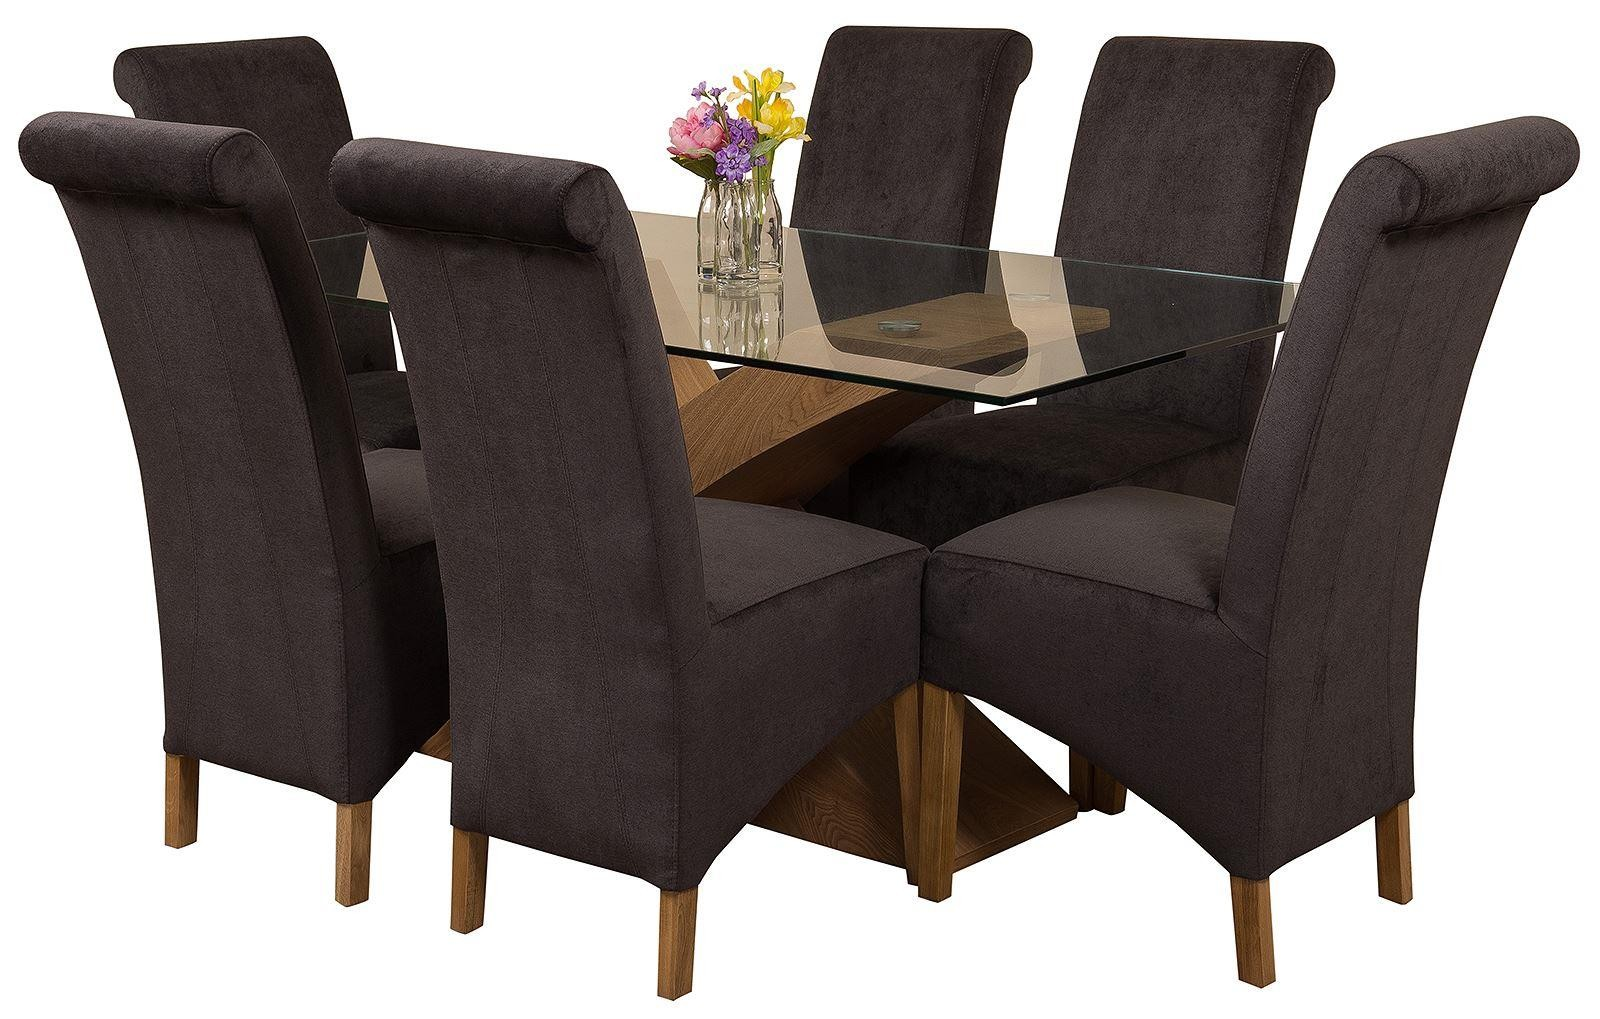 Valencia Oak 160cm Wood and Glass Dining Table with 6 Montana Dining Chairs [Black Fabric]